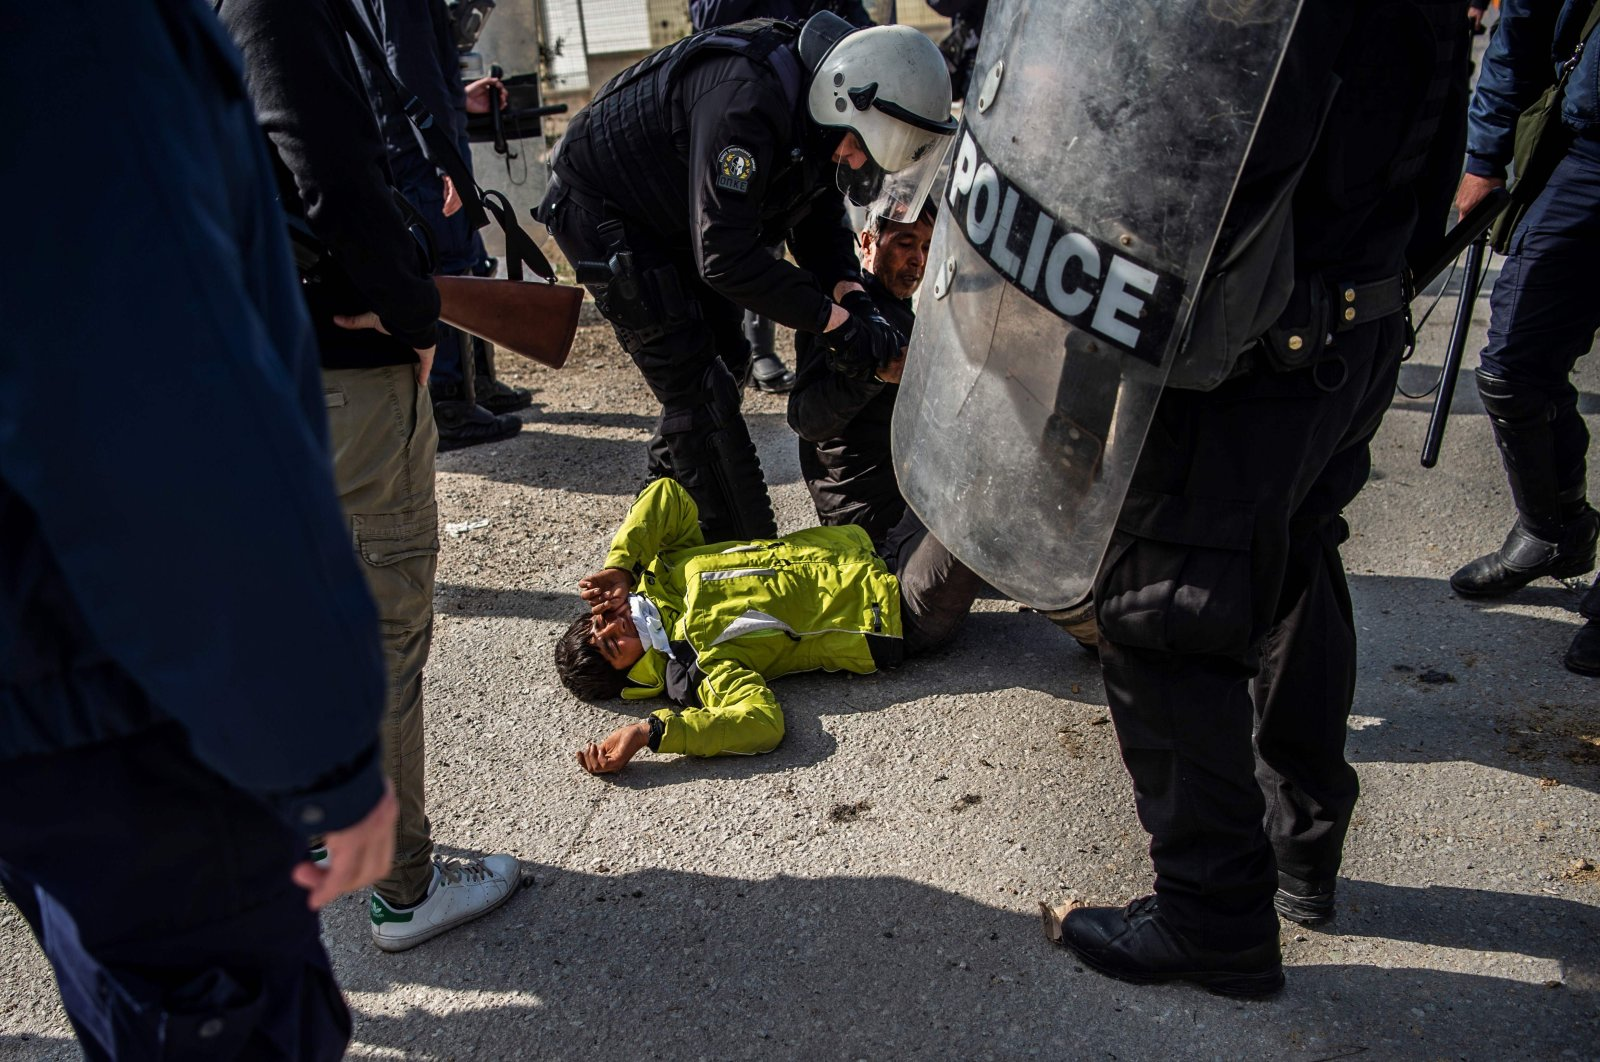 Greek riot police detain a migrant teen during clashes near the Moria camp for refugees and migrants, on the island of Lesbos, Greece, March 2, 2020. (AFP Photo)